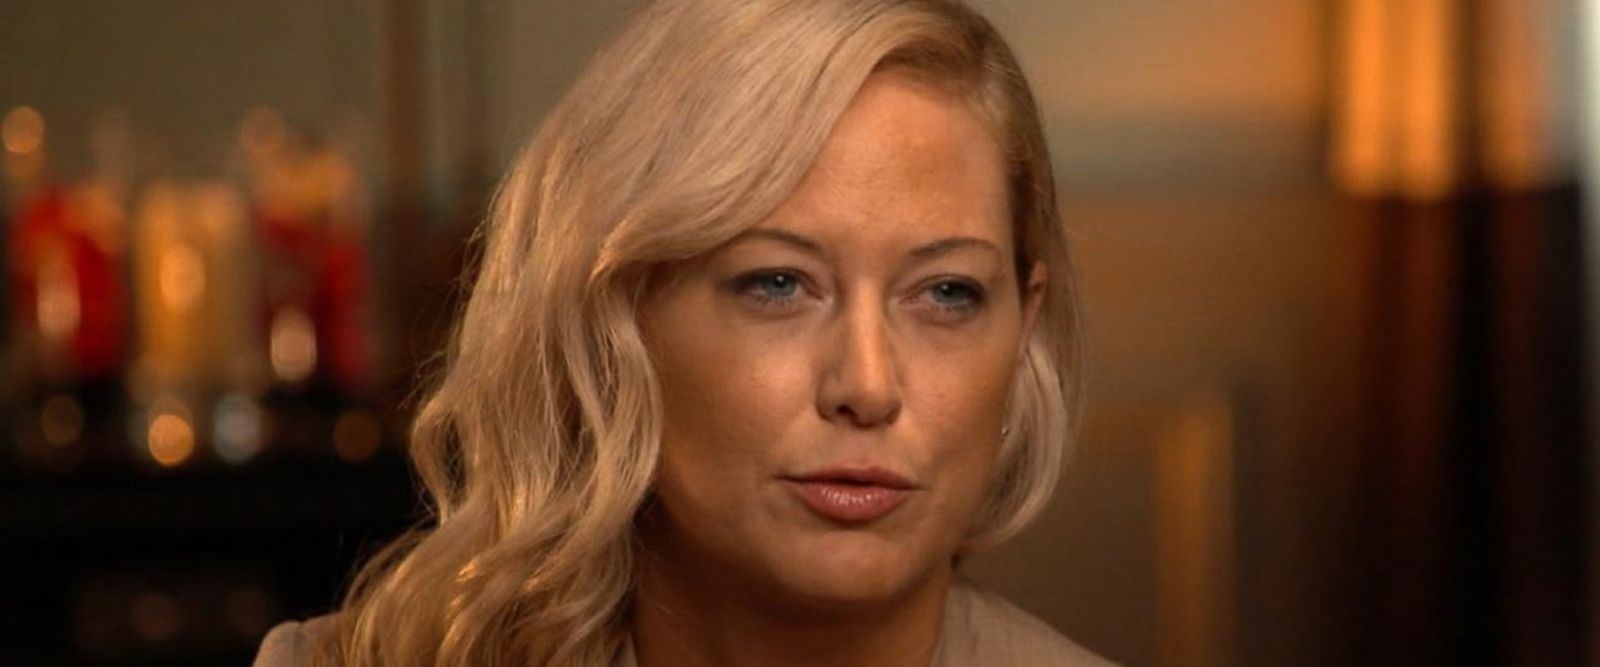 VIDEO: Molly Martens Corbett says husband was controlling, possessive: Part 1